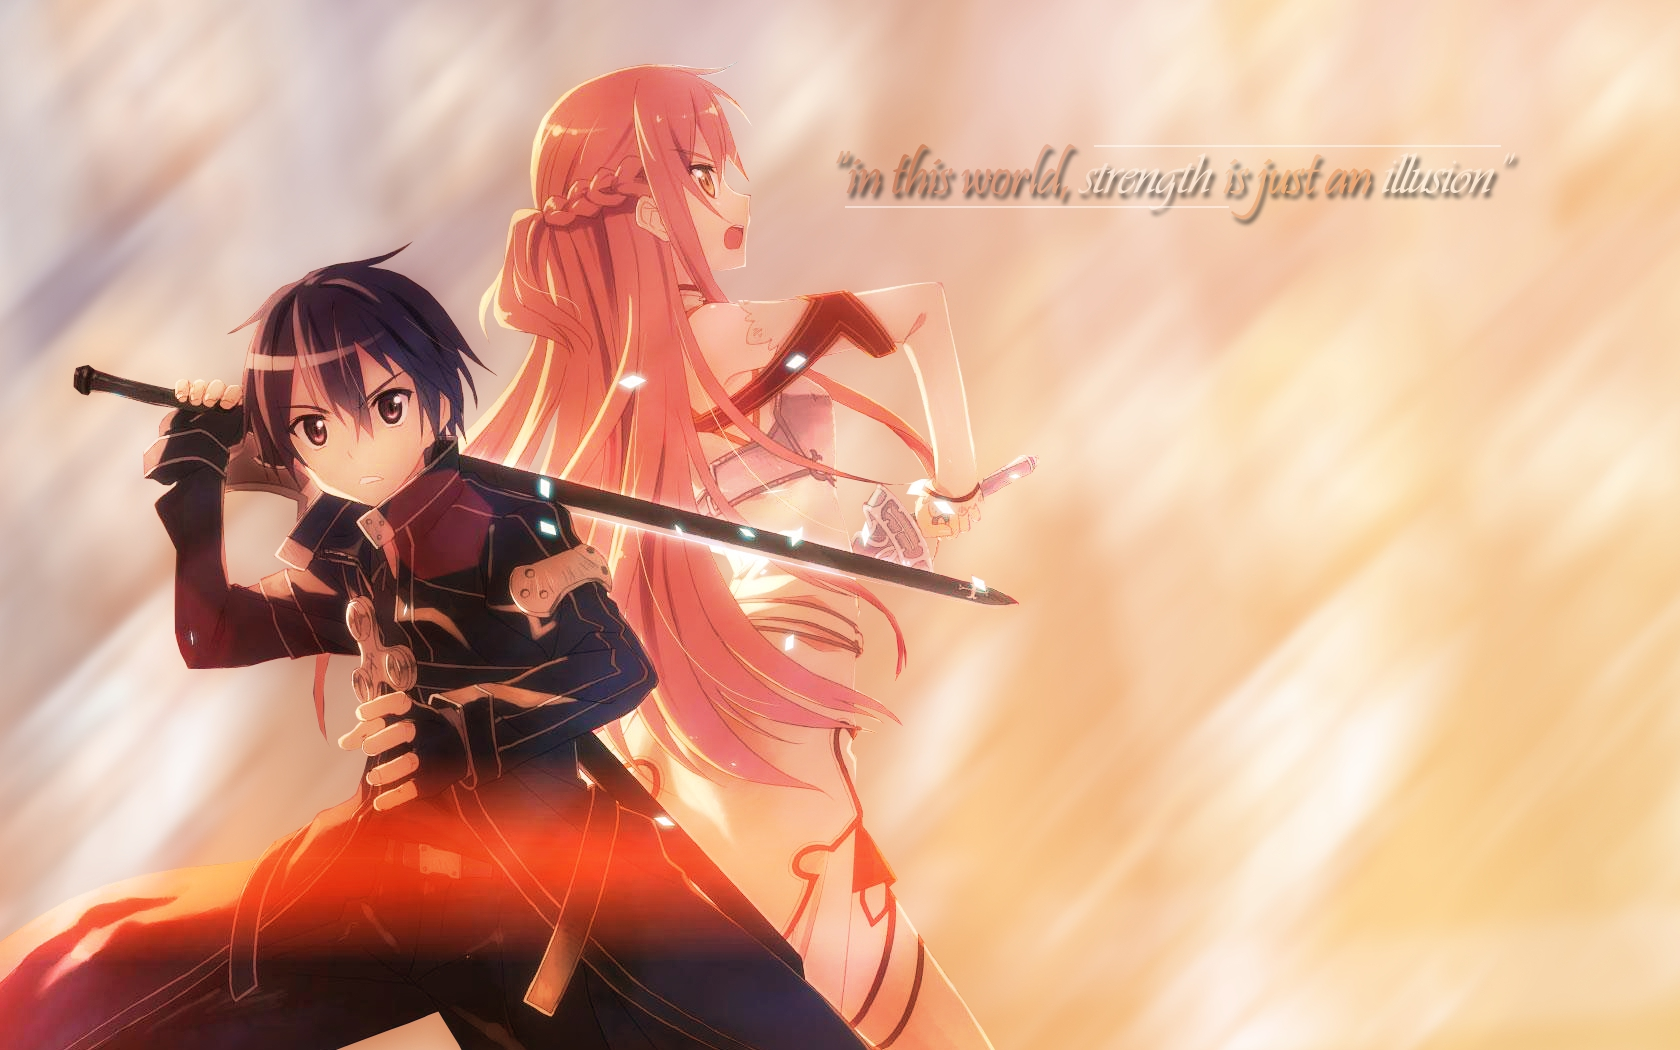 49+ Epic Sword Art Online Wallpapers on WallpaperSafari